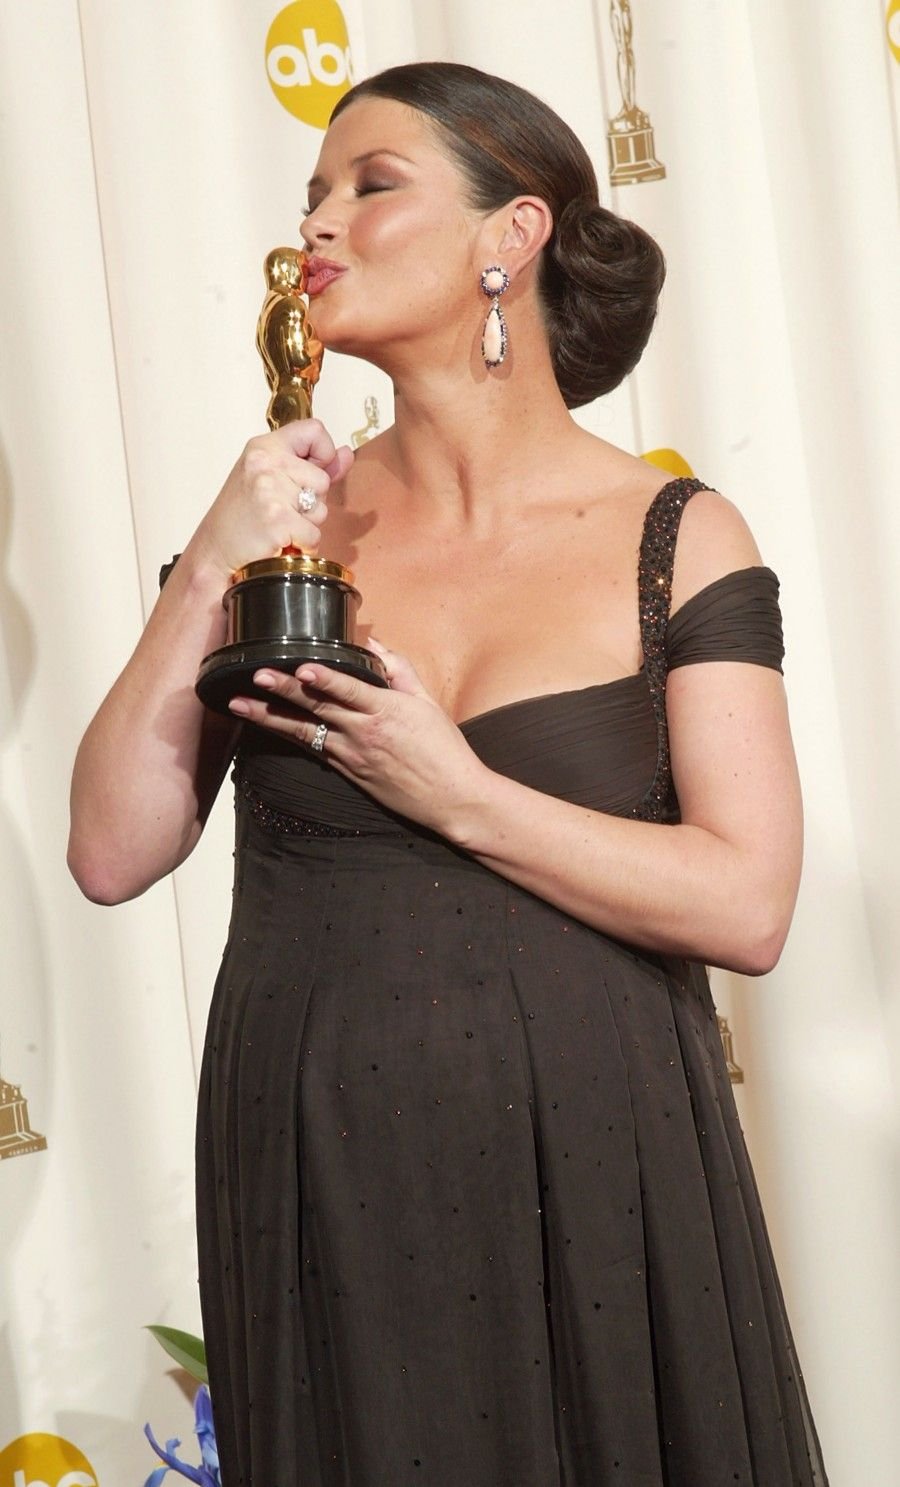 HOLLYWOOD - MARCH 23: Winner for Best Supporting Actress, Catherine Zeta-Jones poses backstage during the 75th Annual Academy Awards at the Kodak Theater on March 23, 2003 in Hollywood, California. (Photo by Robert Mora/Getty Images)